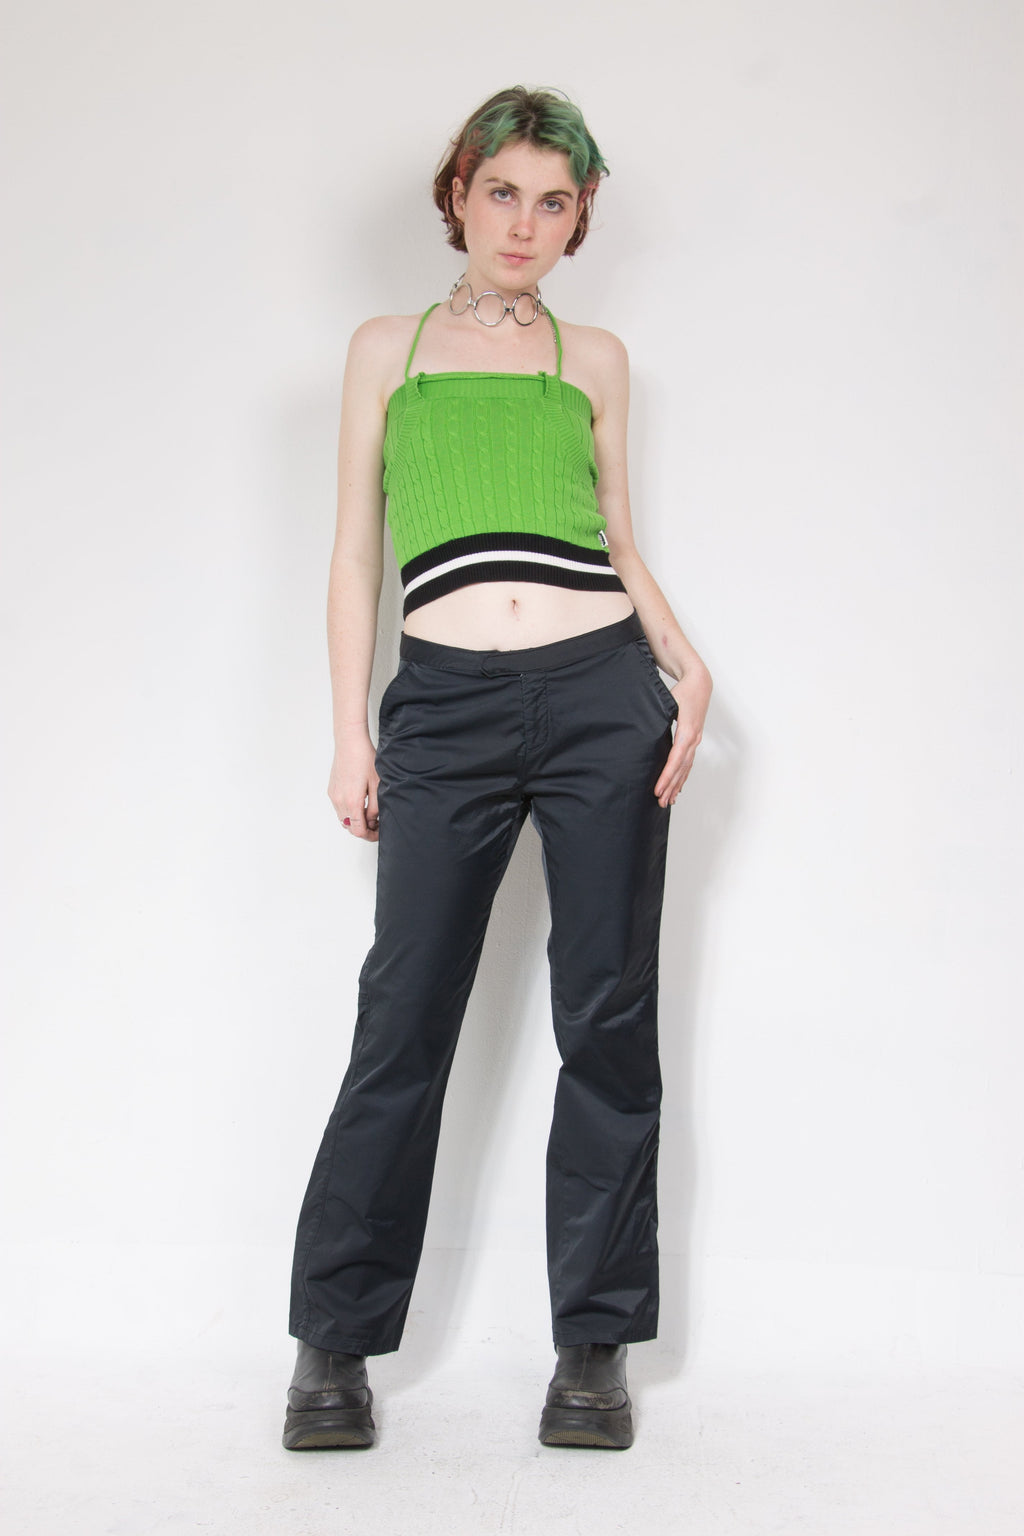 00's Industrial Pants